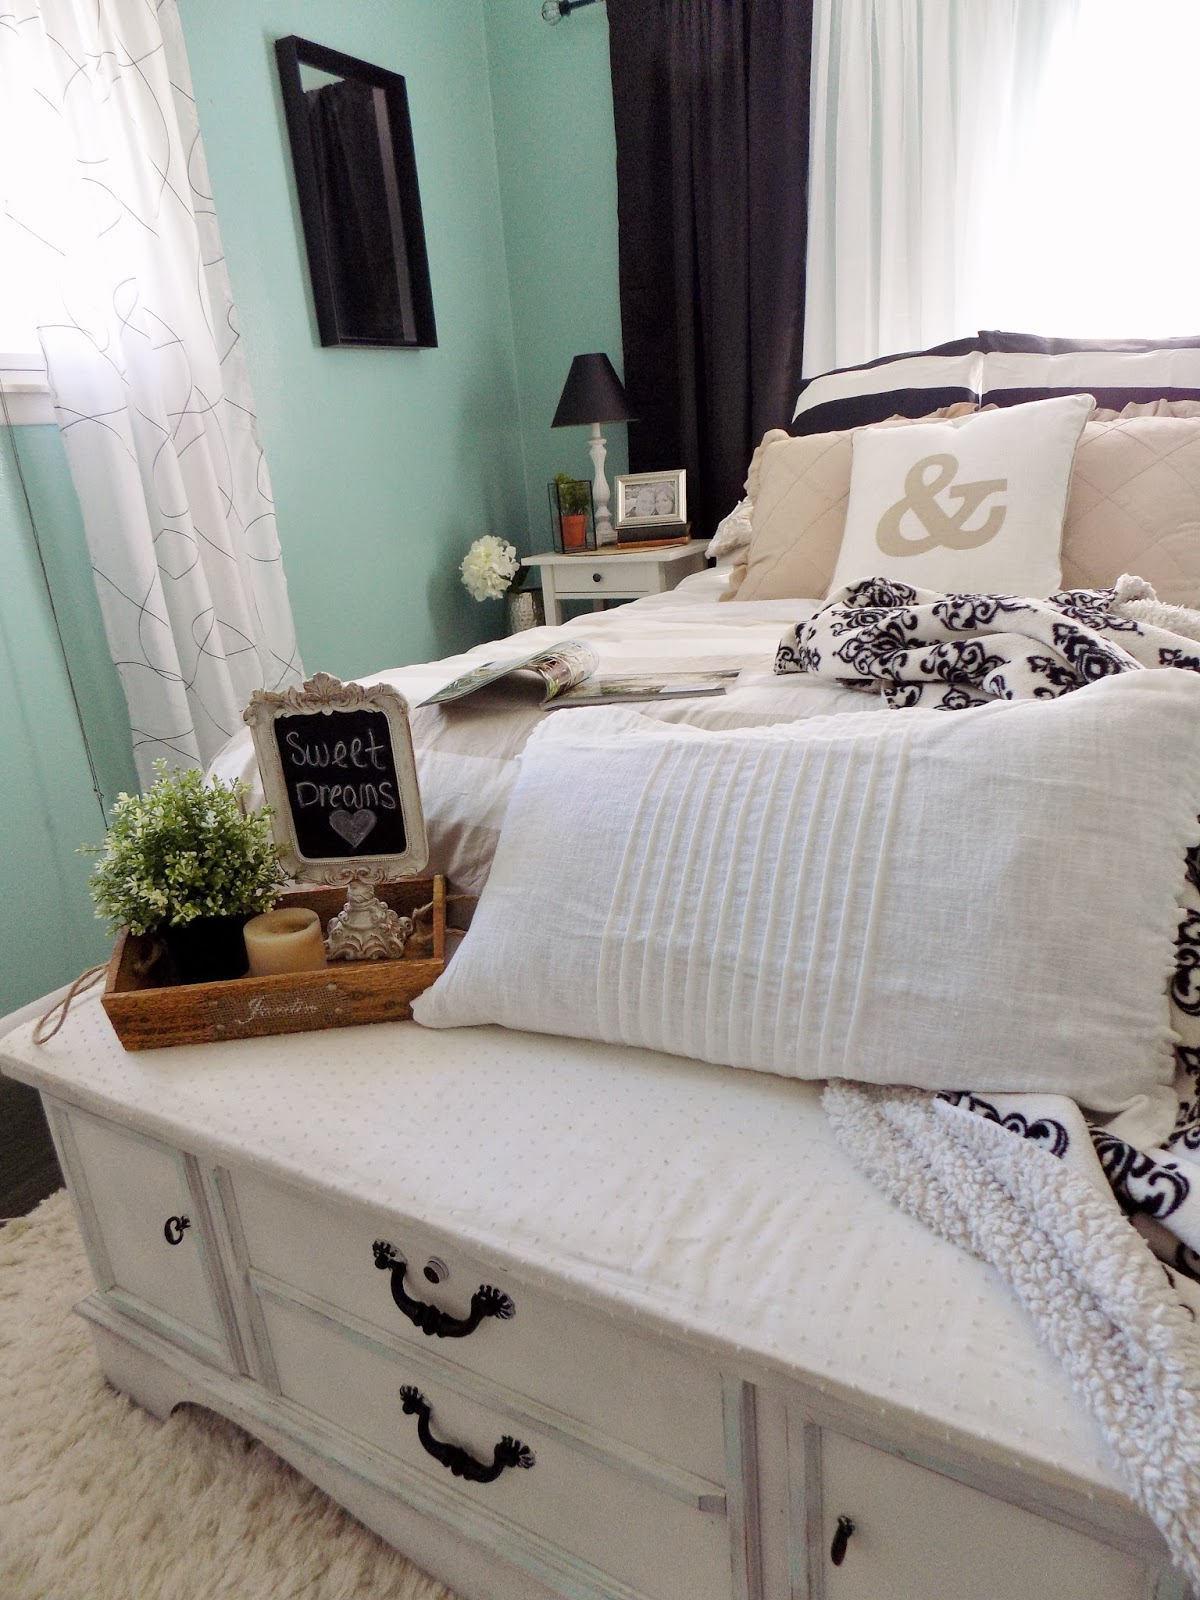 The Quaint Sanctuary Rustic Glam Master Bedroom Reveal